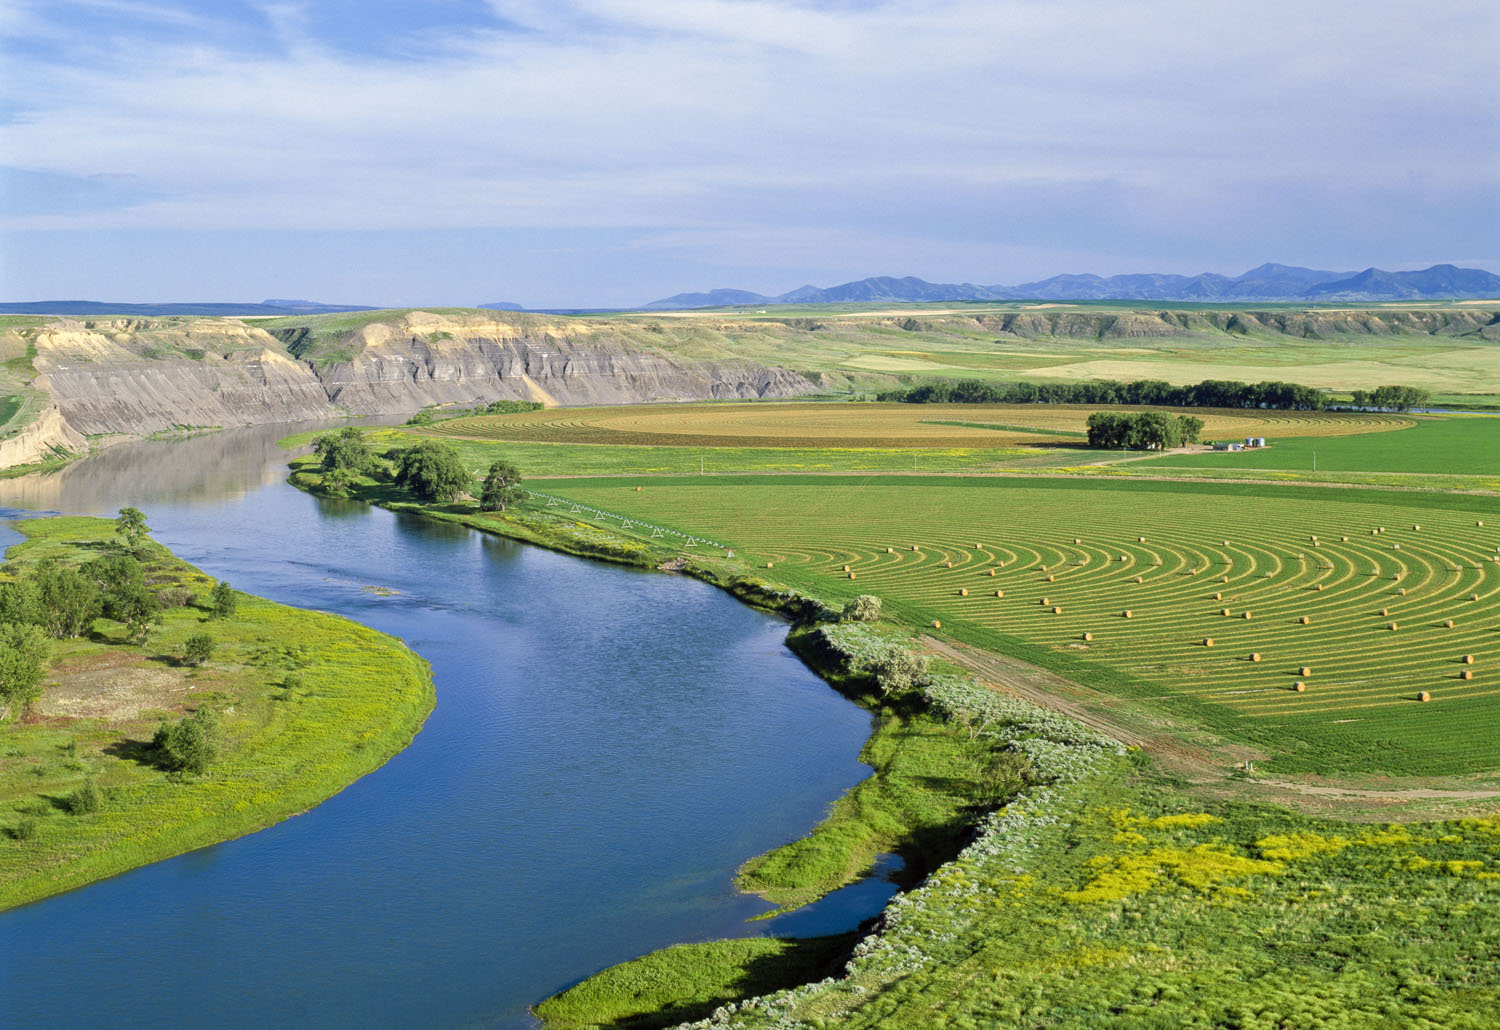 Montana's Greatest Wonder: The Missouri River (Part 3 of 5)